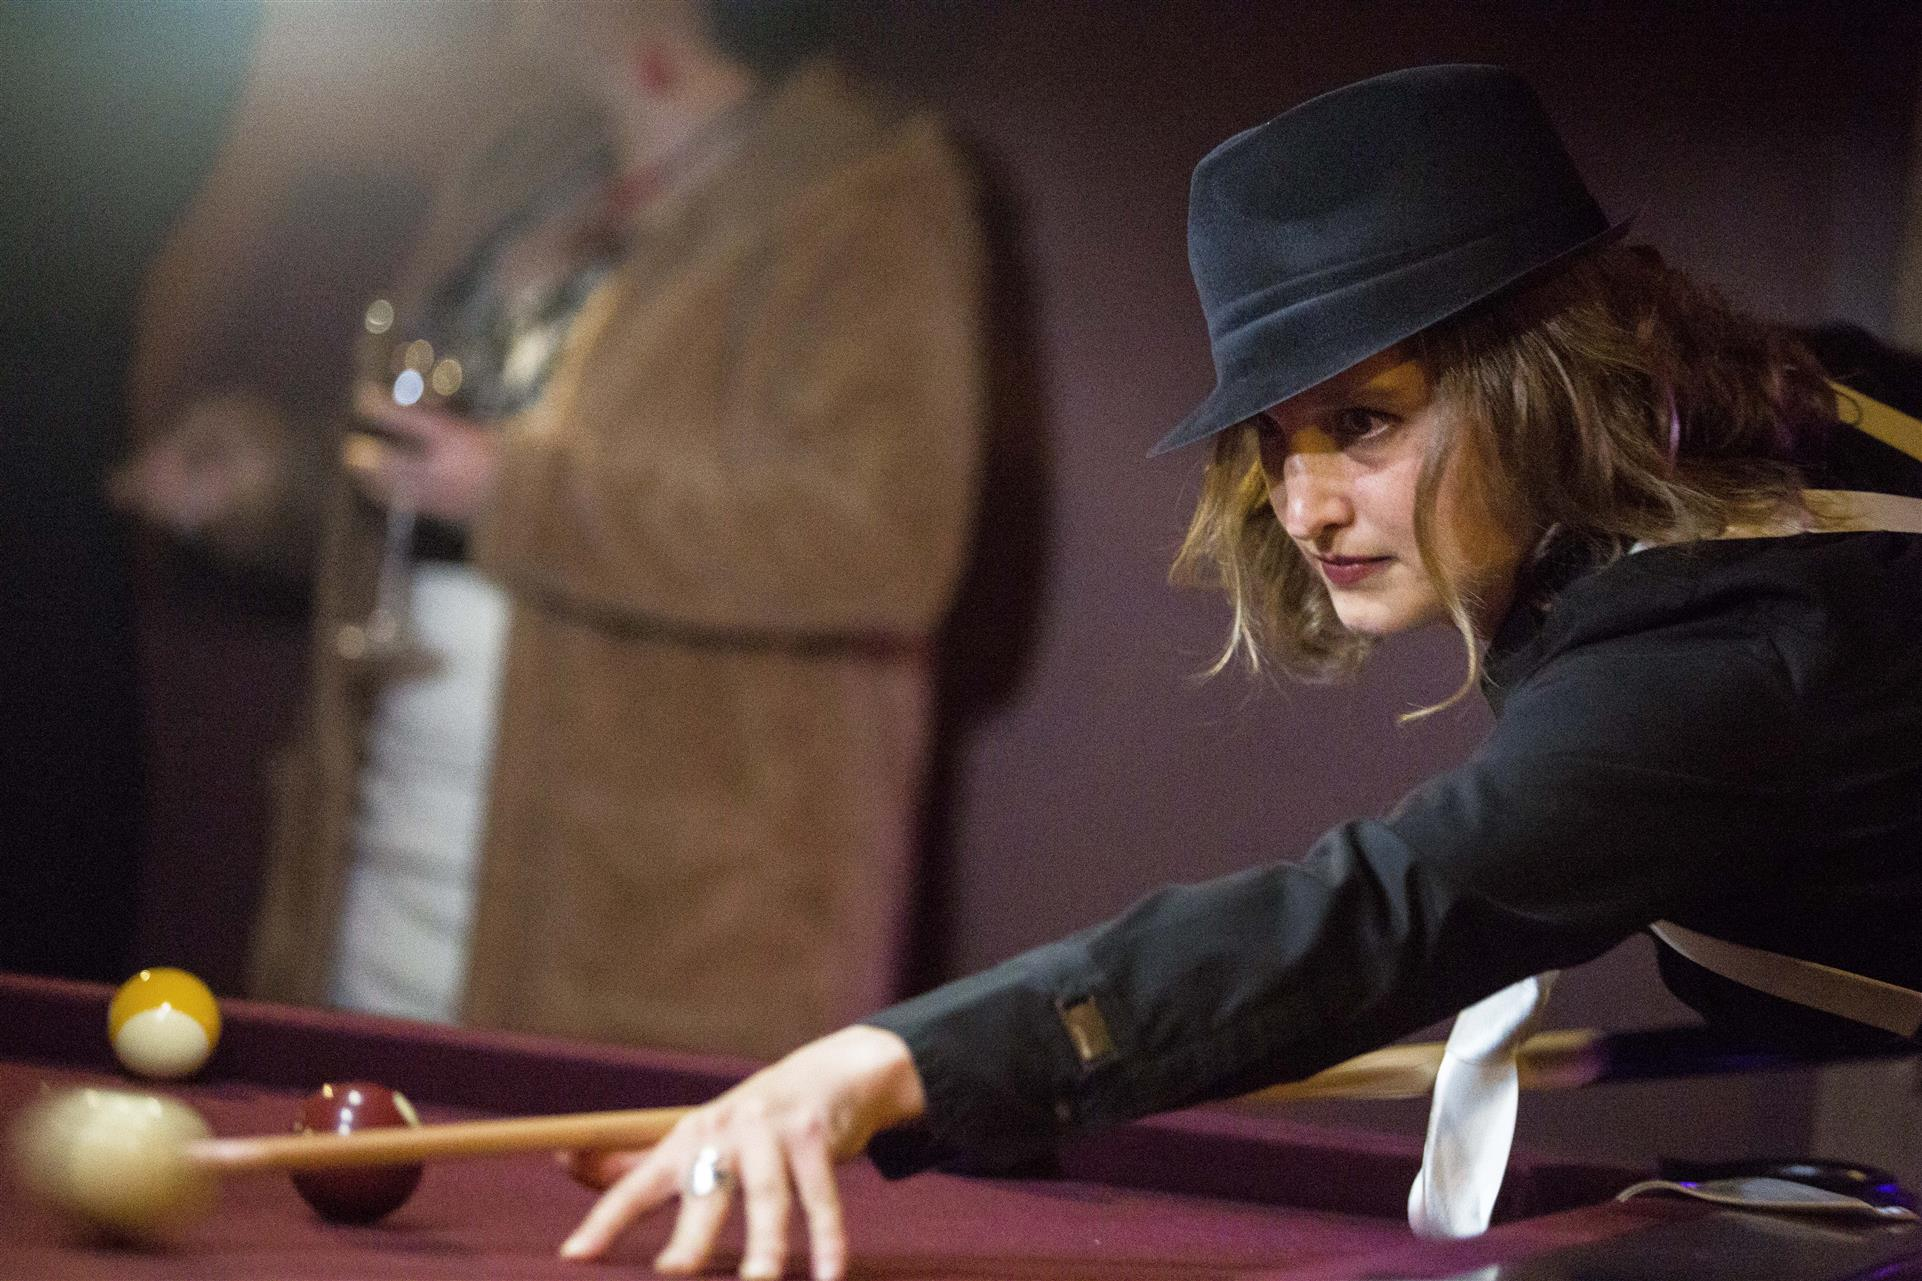 lady dressed in 1920s era clothes playing pool